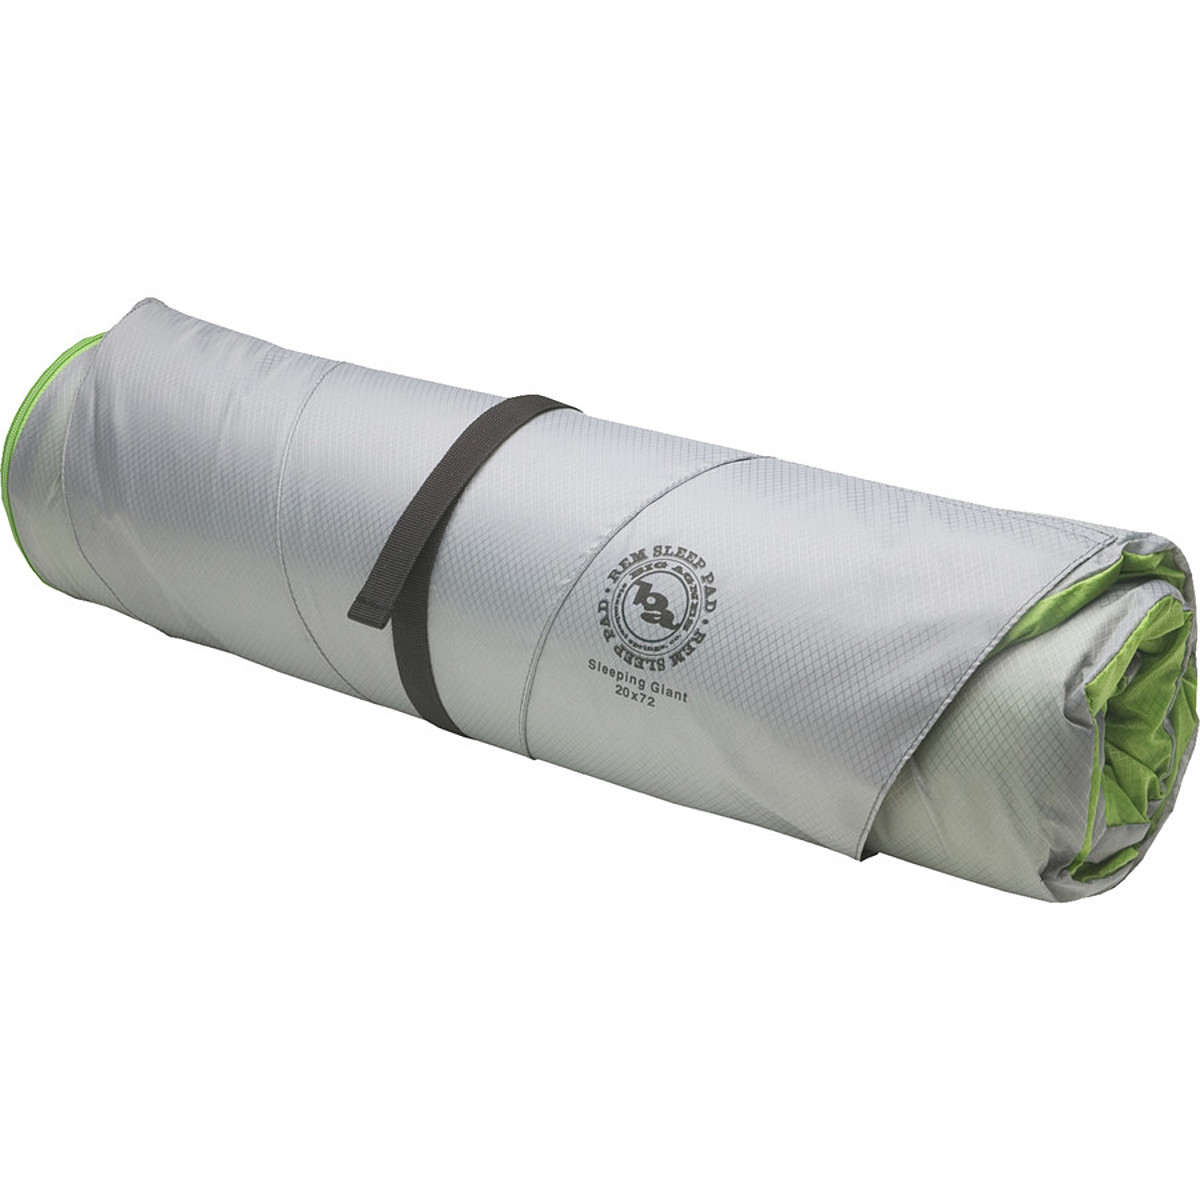 Big Agnes Sleeping Giant Memory Foam Pad (Upgrade Kit)